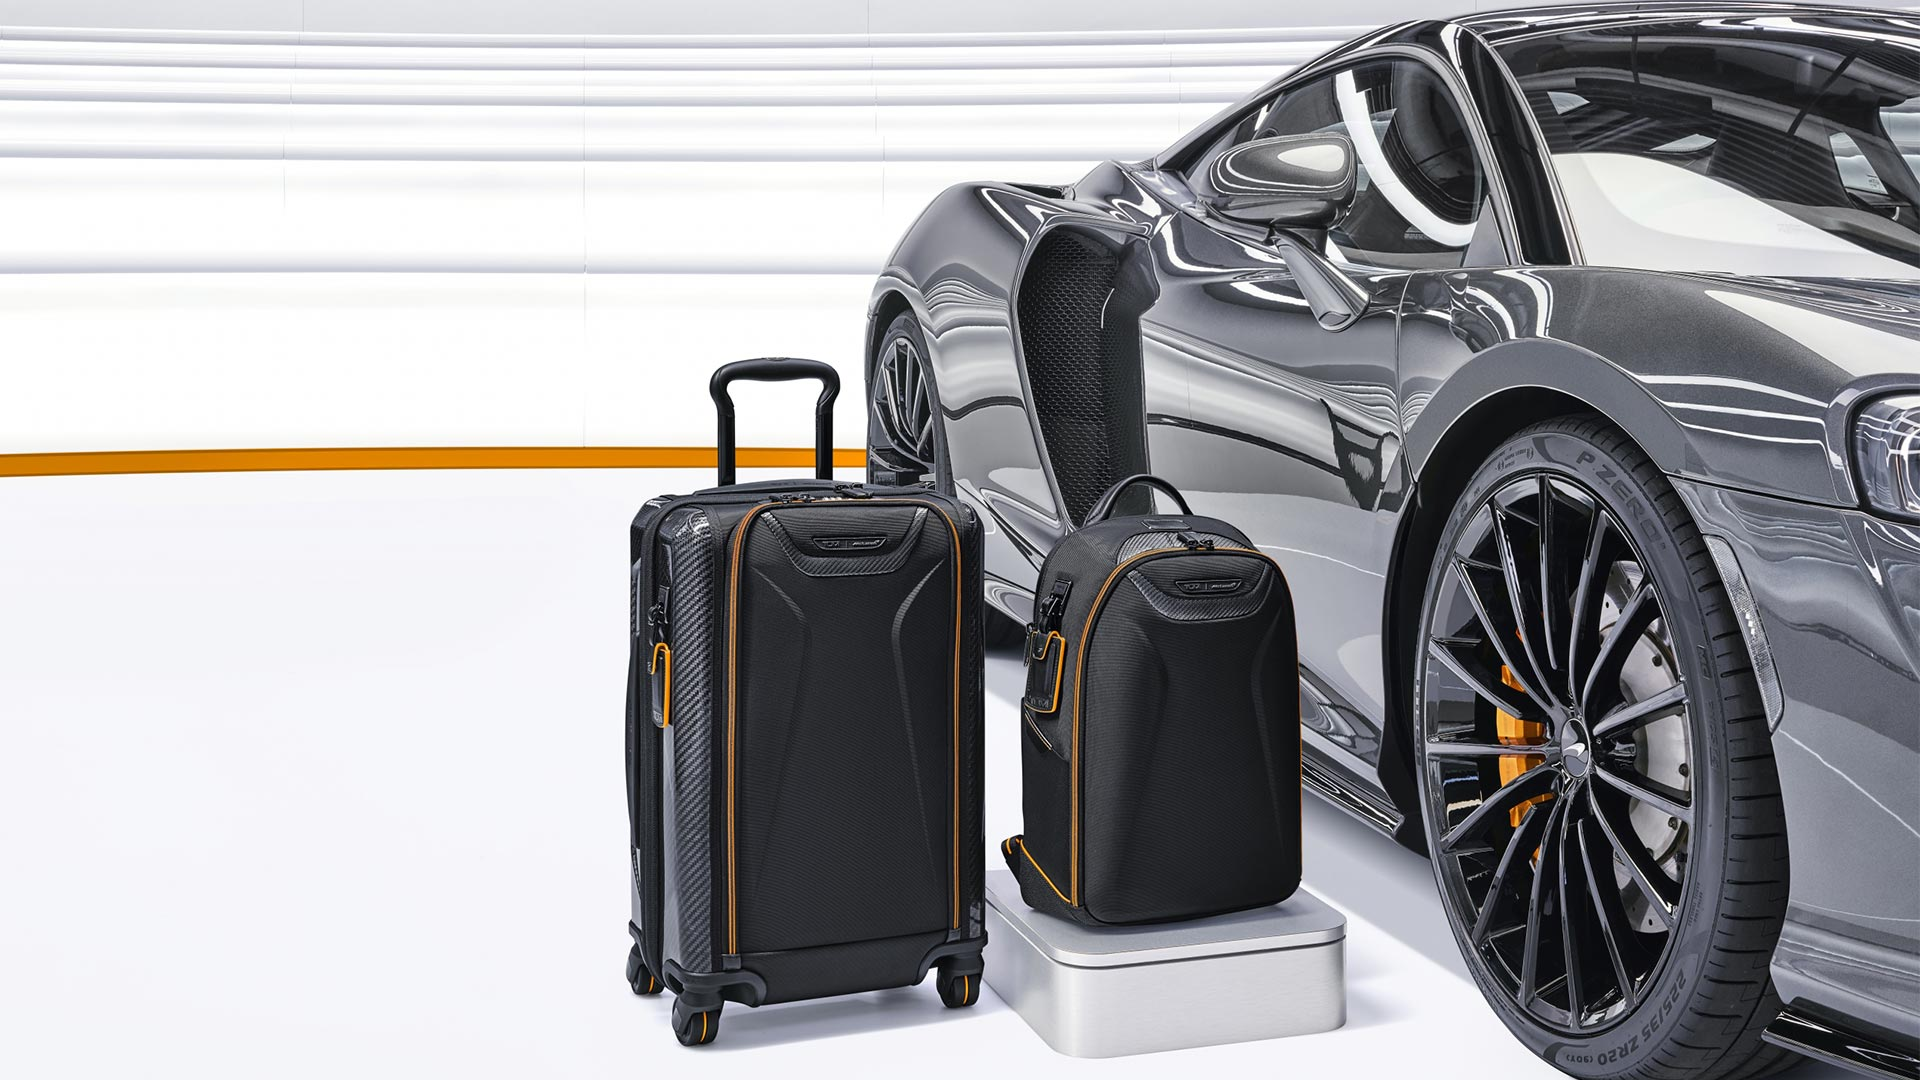 Tumi's McLaren Inspired Capsule Luggage - Backpack and Luggage